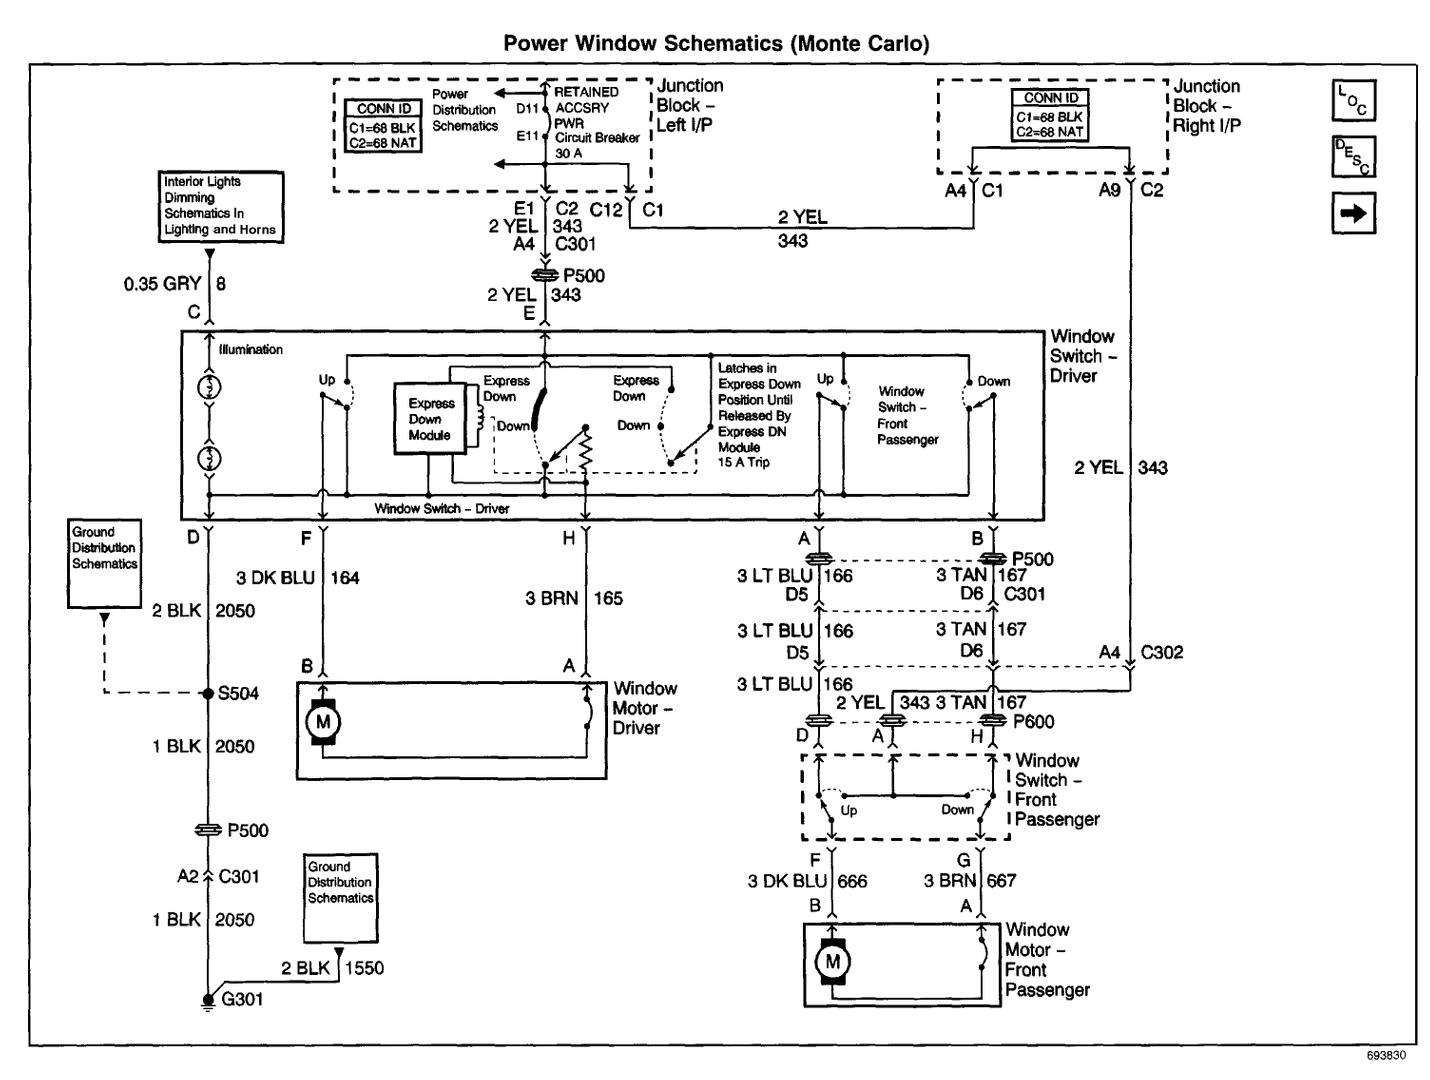 1998 chevy monte carlo wiring diagram wiring diagram guide for dummies95 monte carlo wiring diagram premium